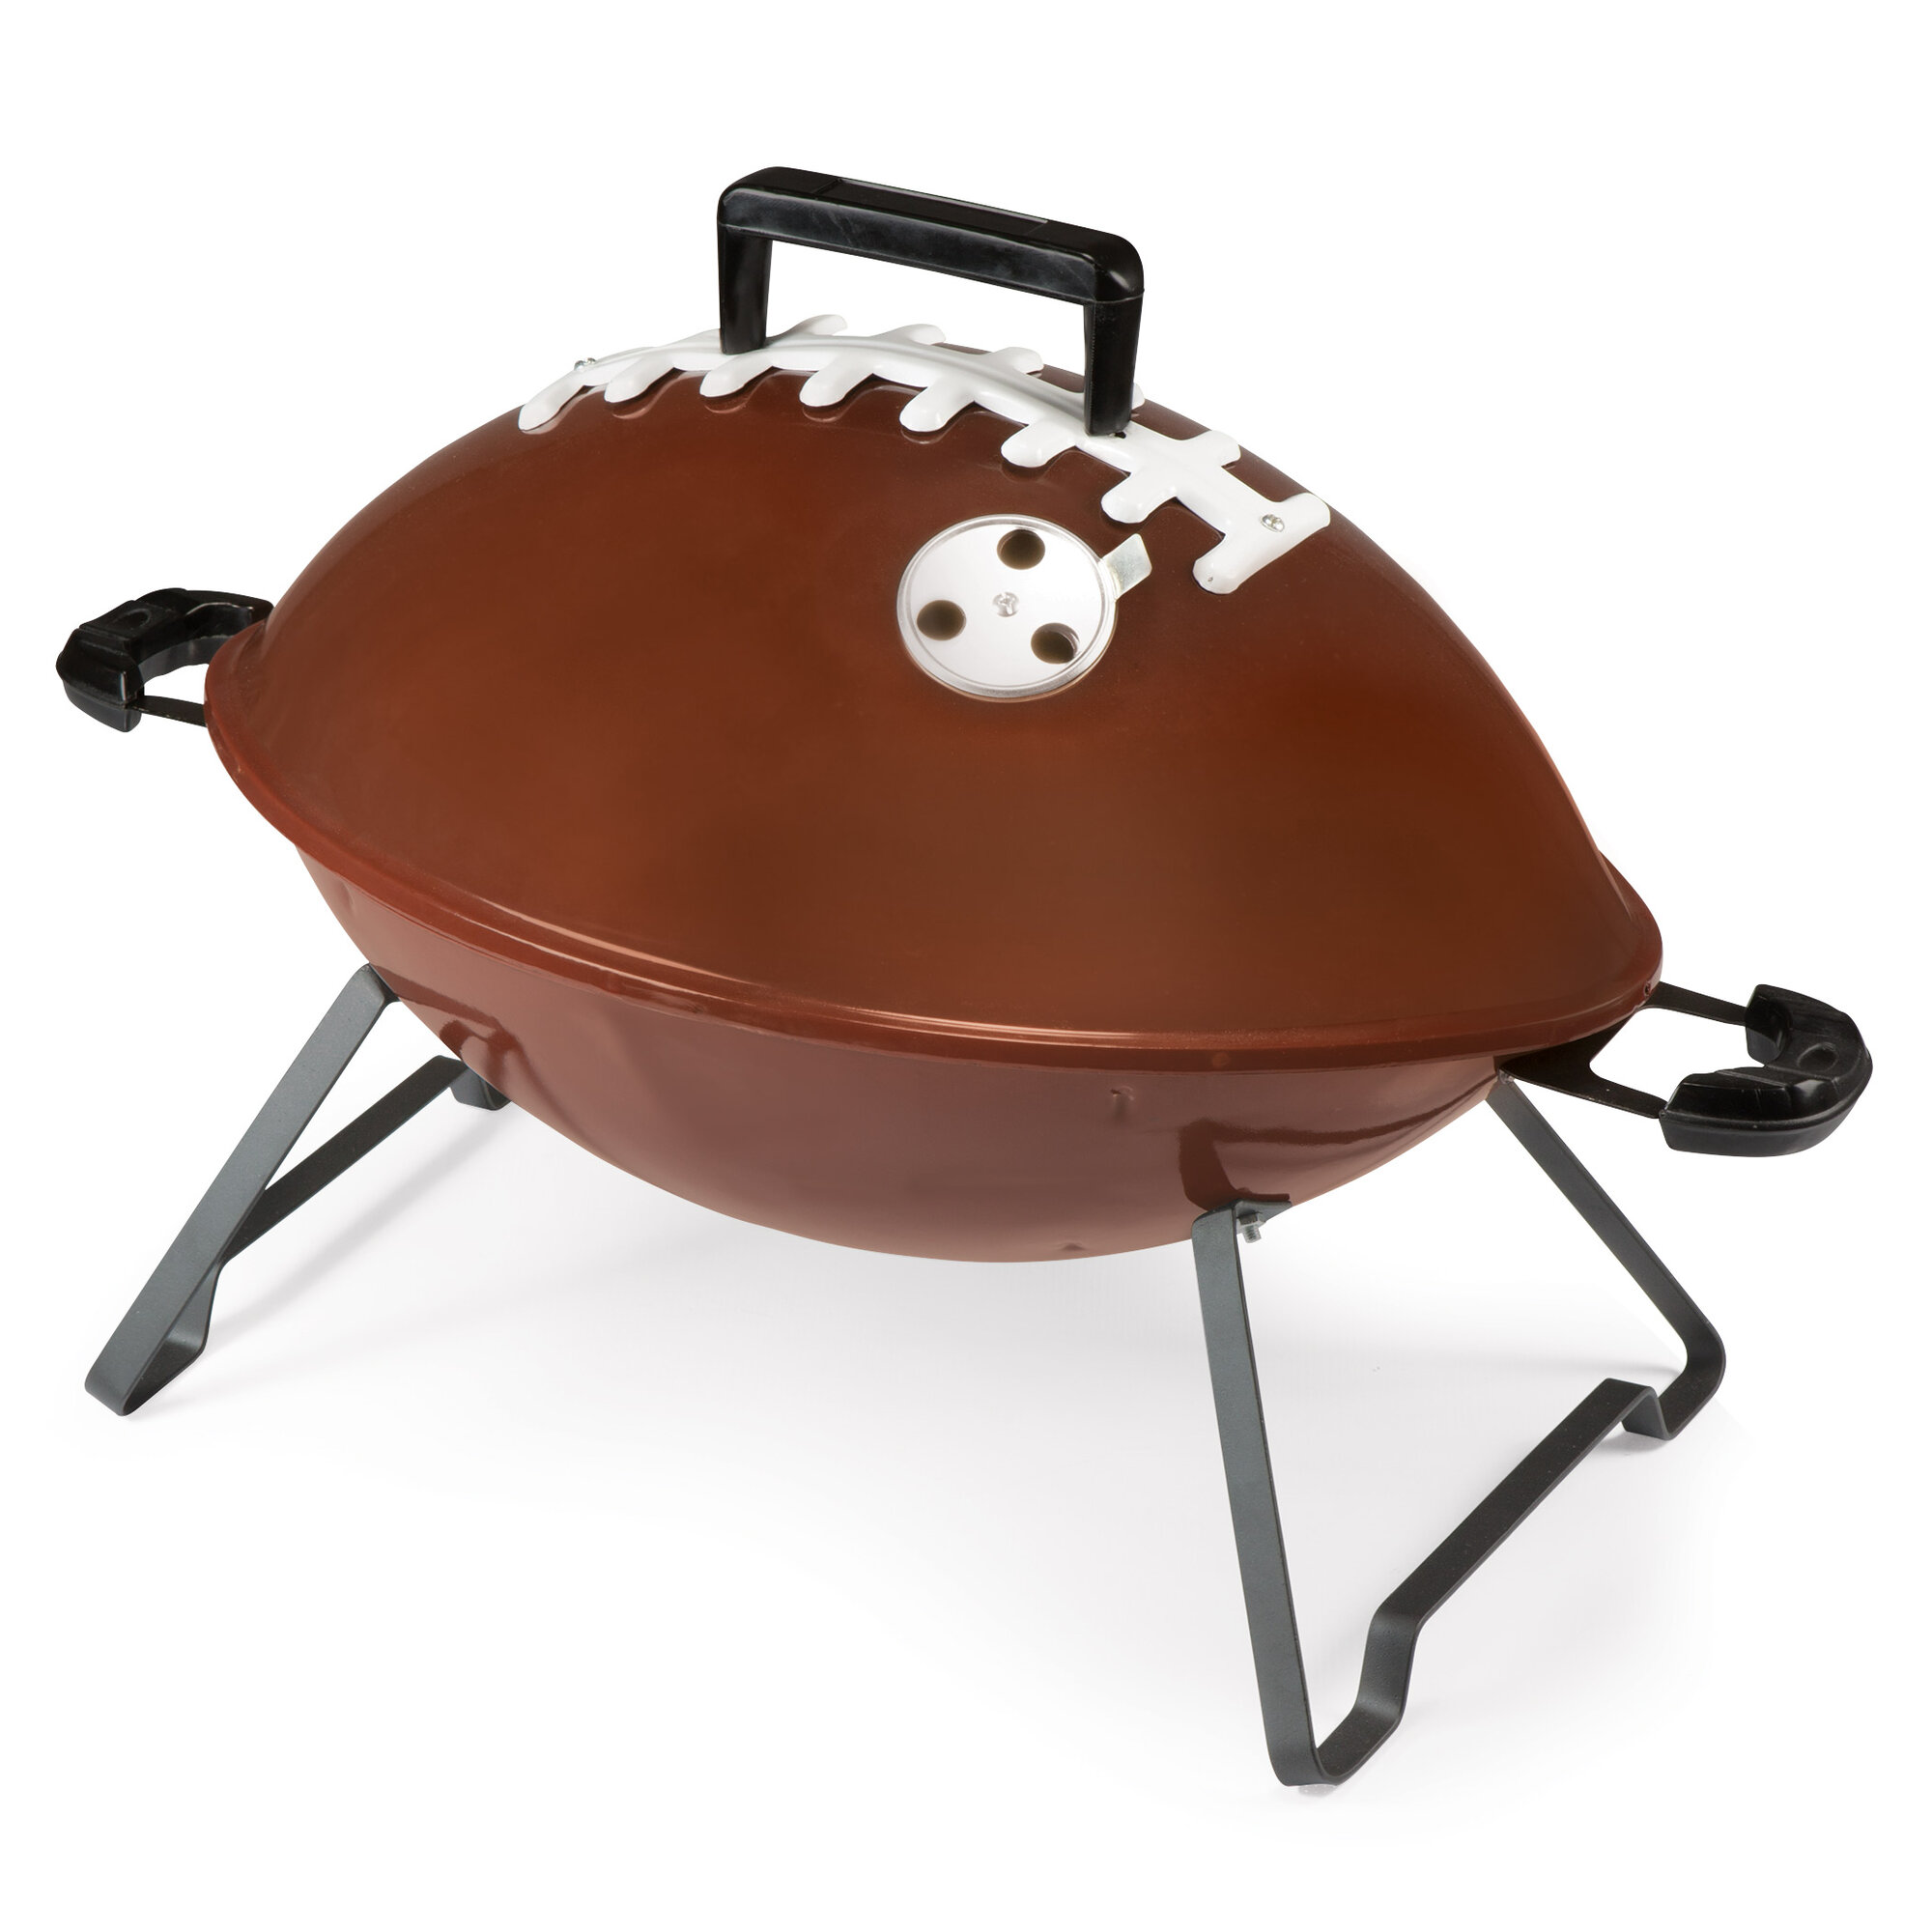 Lazy Budget Chef Top 23 Tailgating Supplies For The